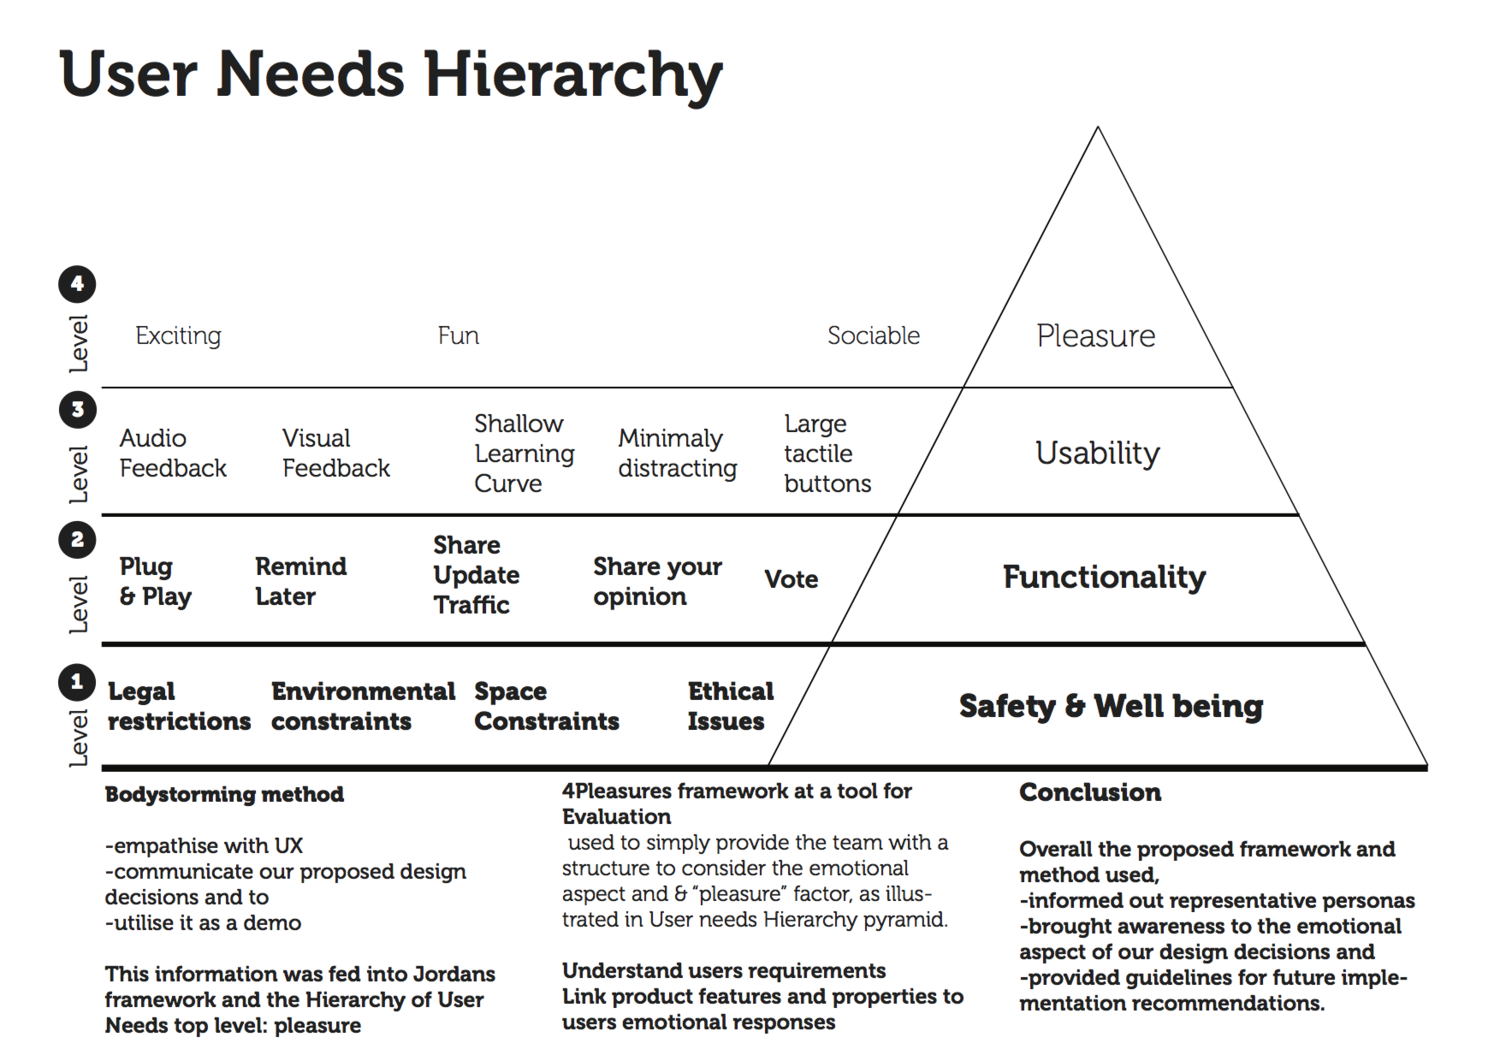 User Needs Hierarchy framework